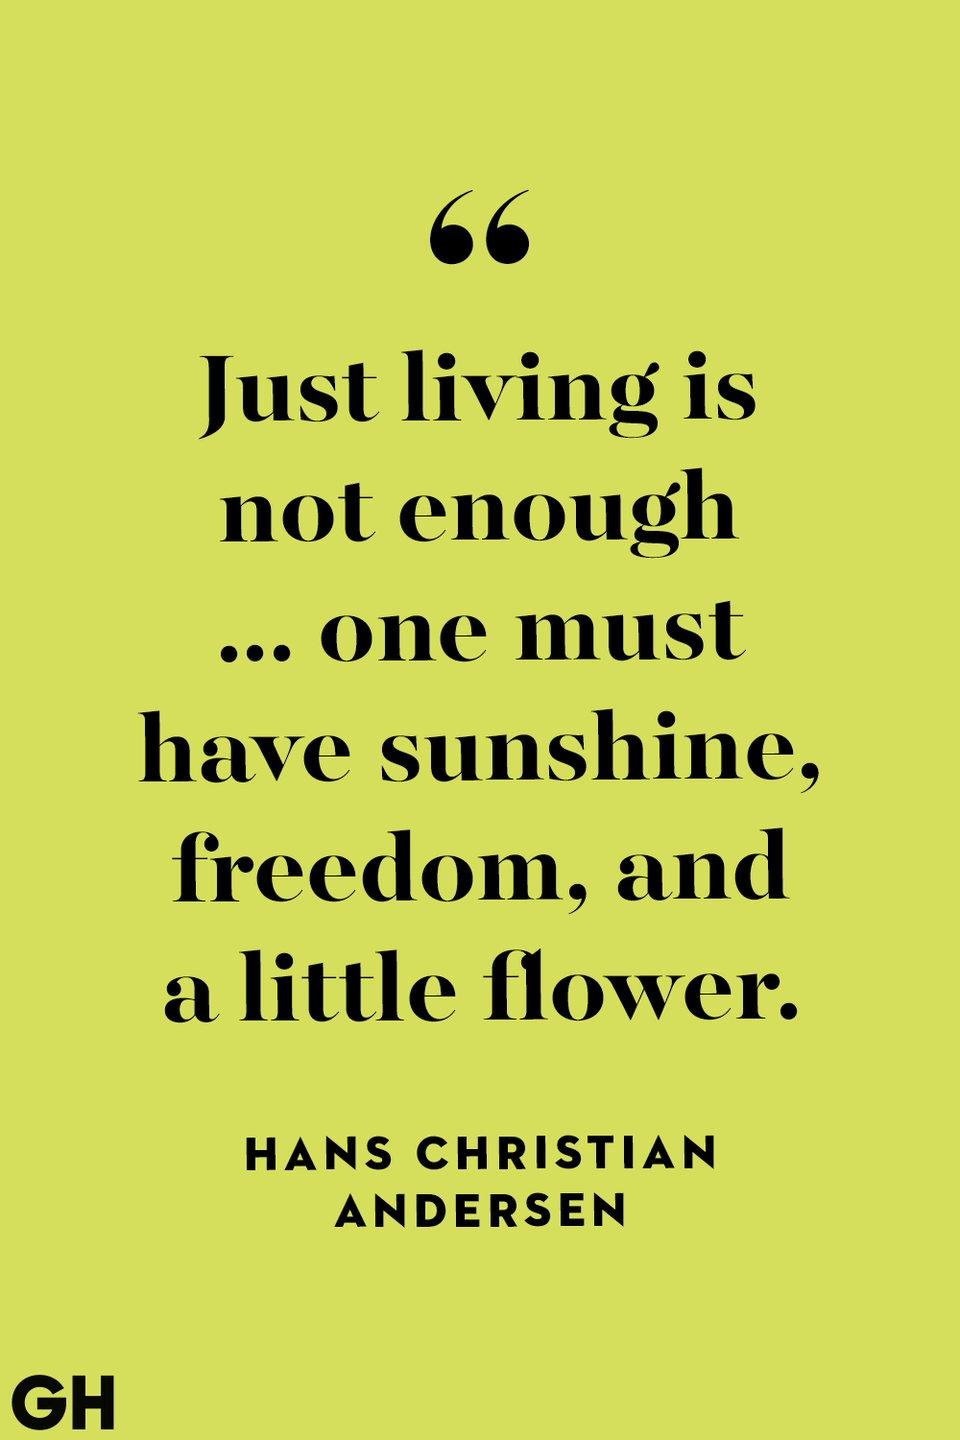 <p>Just living is not enough ... one must have sunshine, freedom, and a little flower.</p>